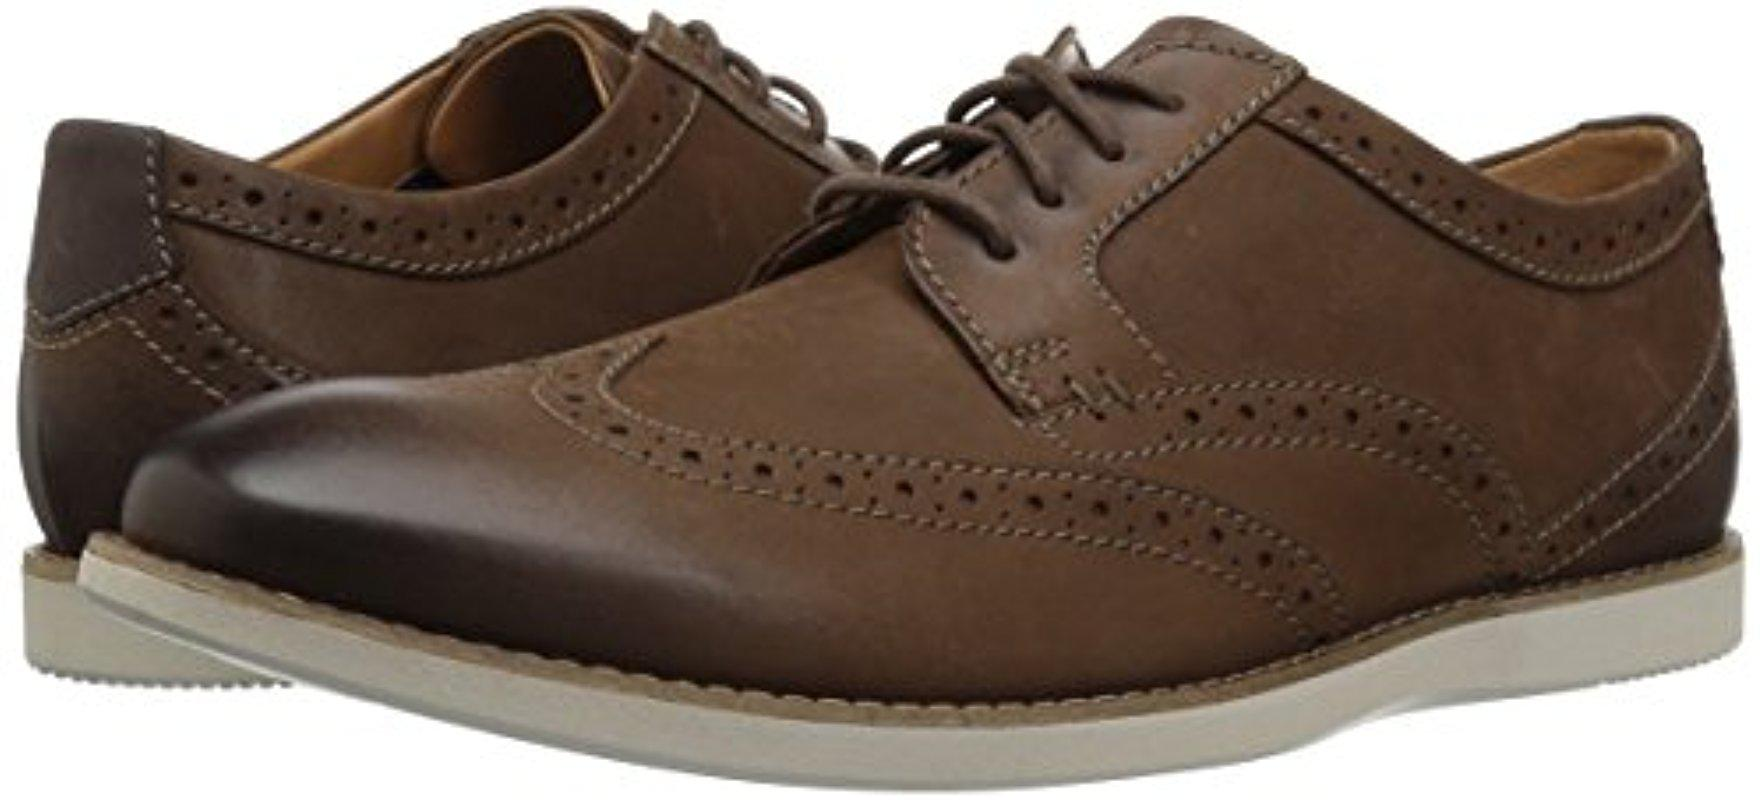 Clarks Leather Raharto Wing Shoe in